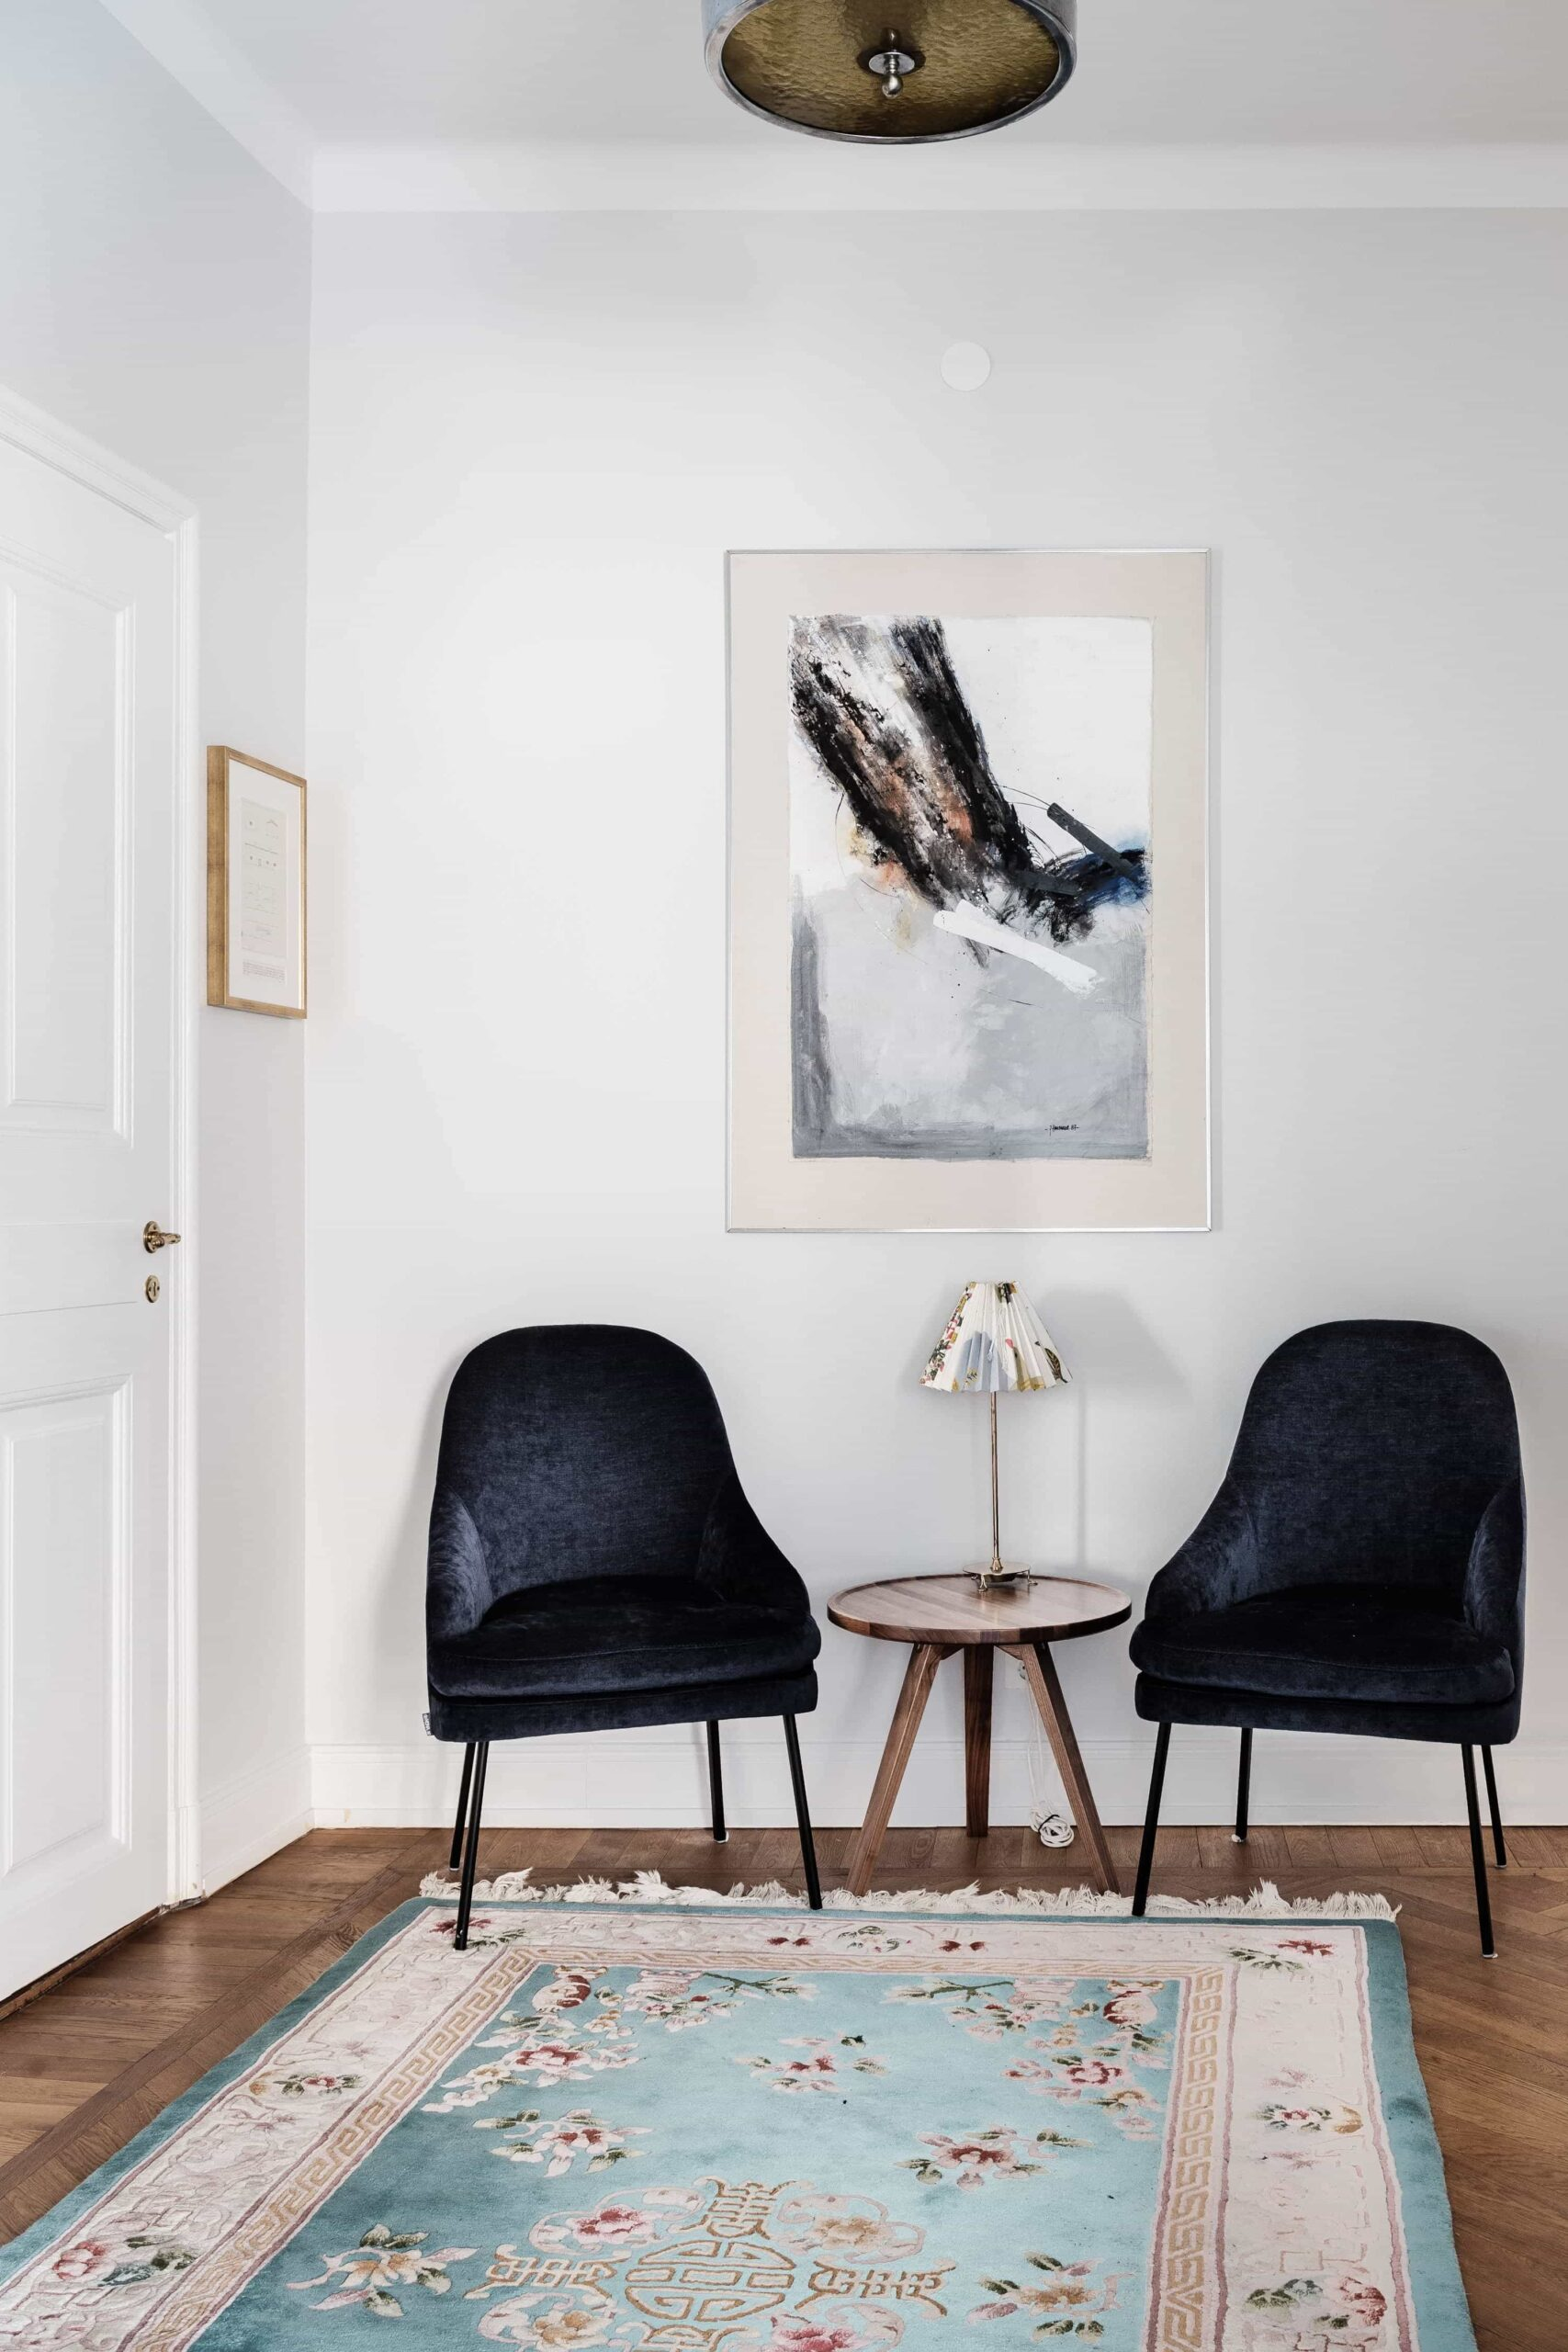 this is a scandianvian apartment with vintage elements such as a rug